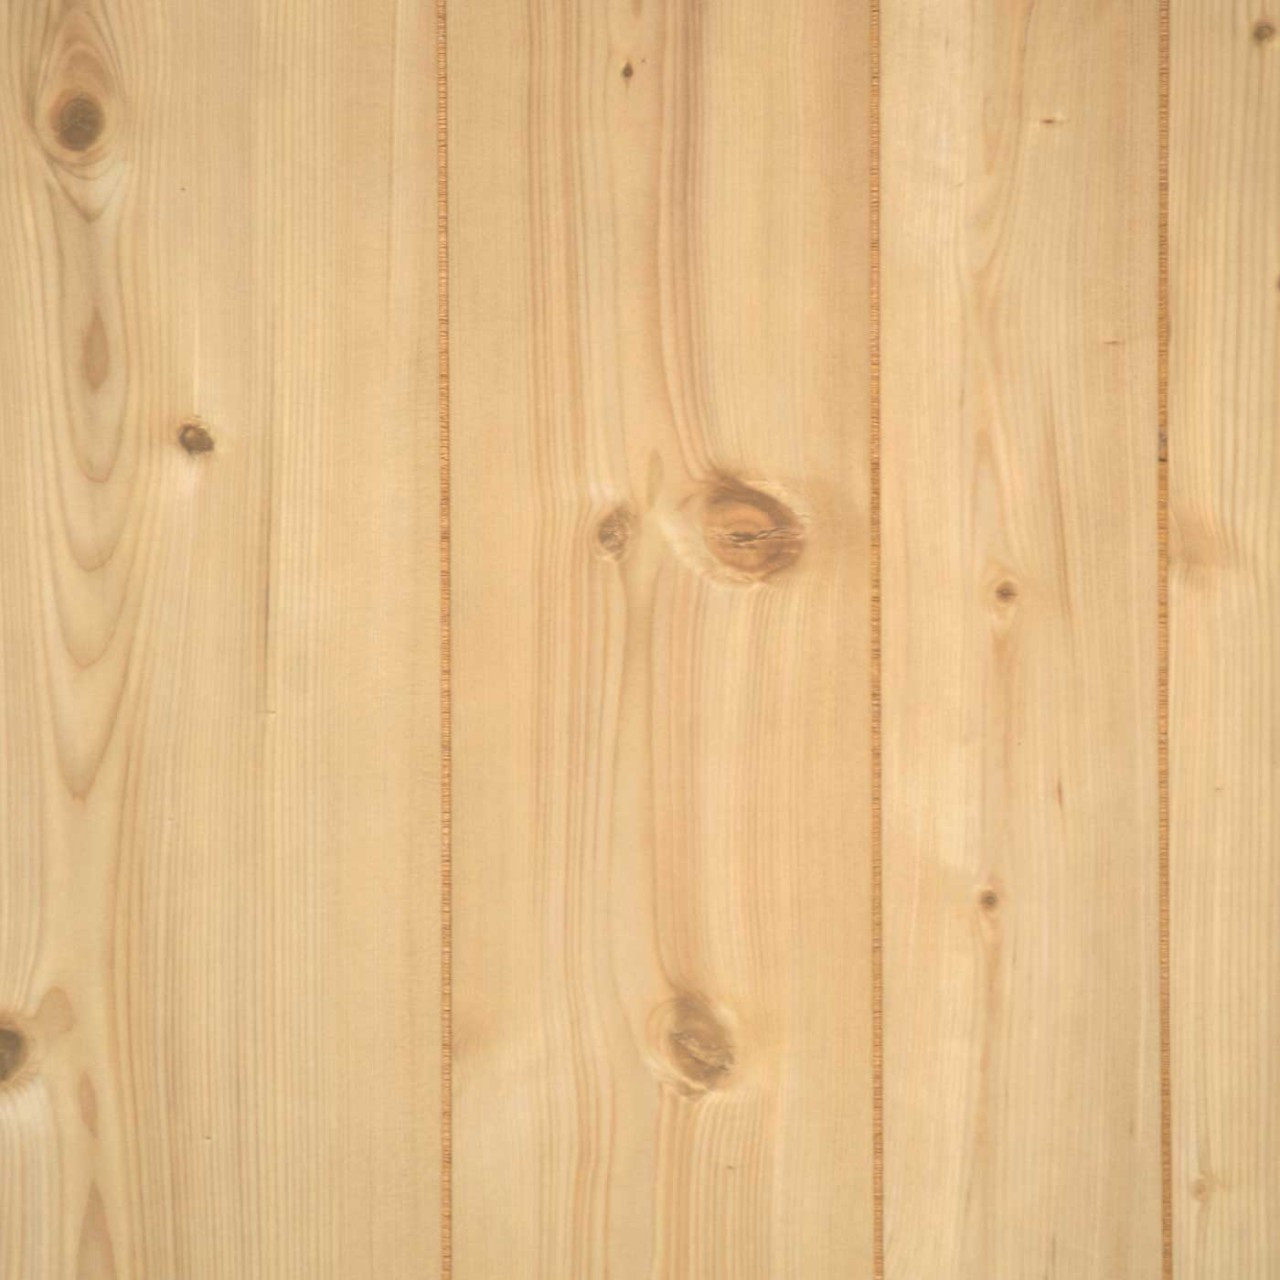 Wood Paneling Rustic Pine Wall Paneling Plywood Panels